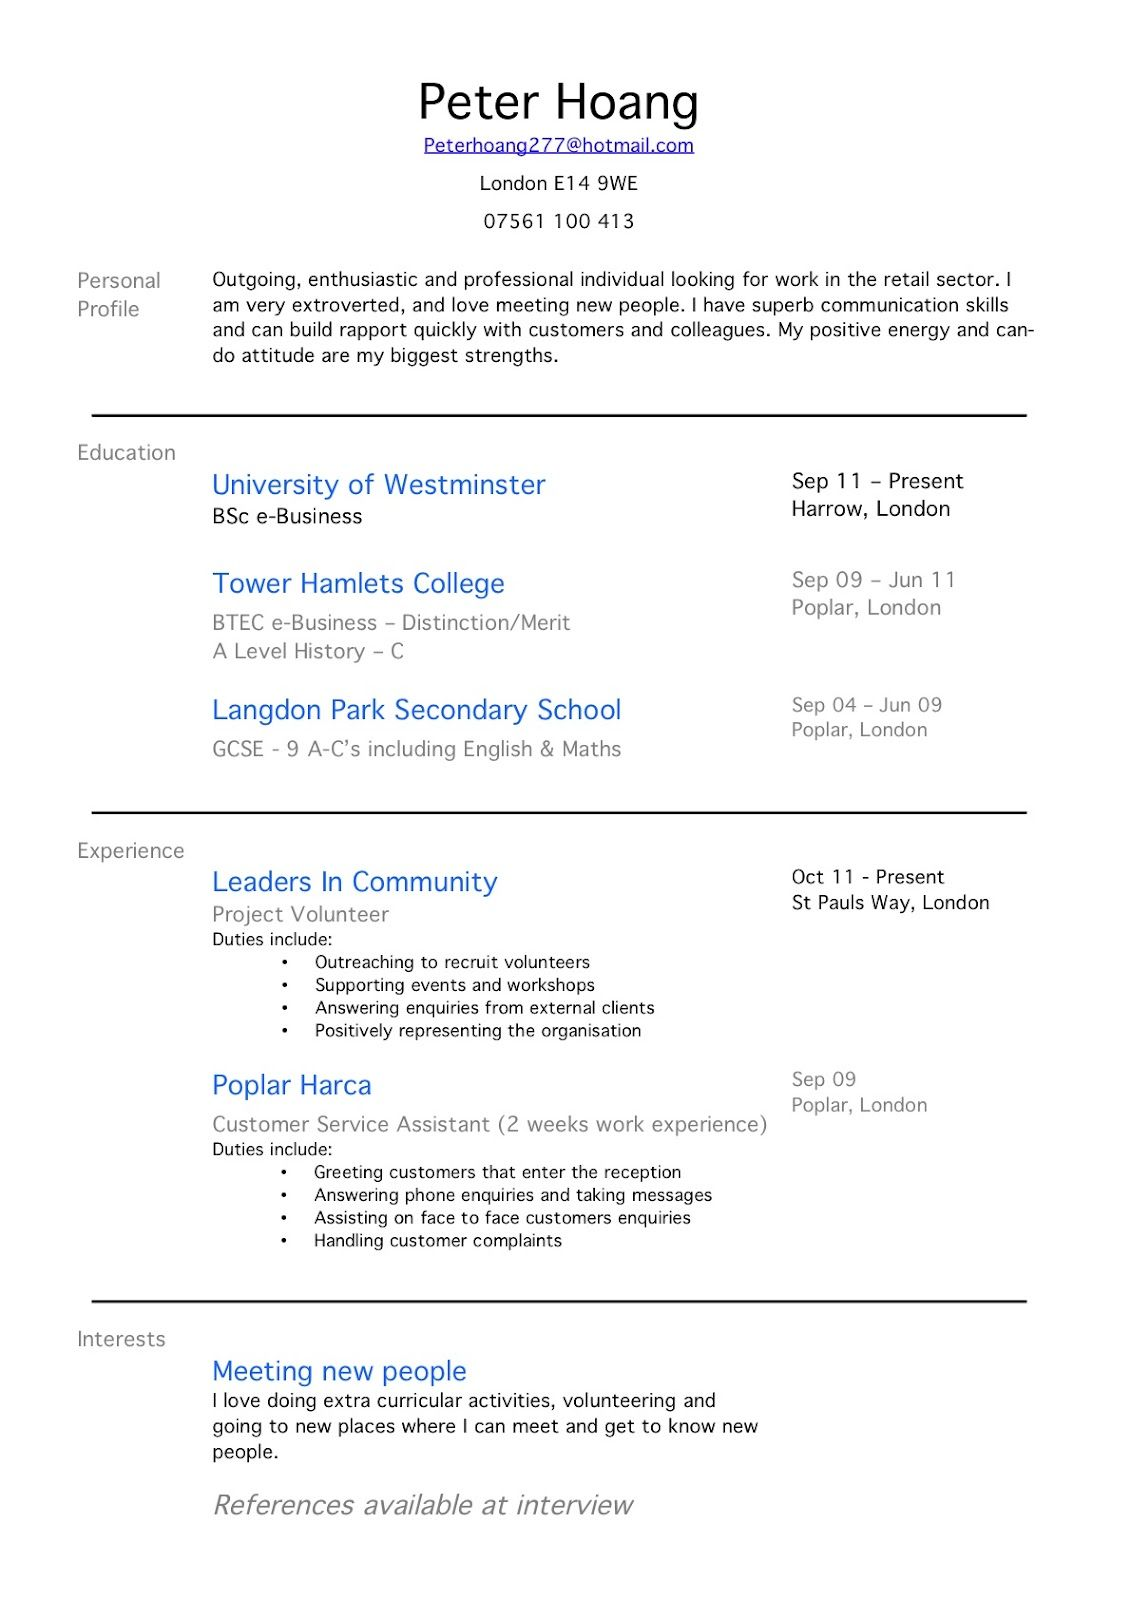 Exceptional How To Write A Teacher Resume With No Experience  How To Write A Resume When You Have No Experience